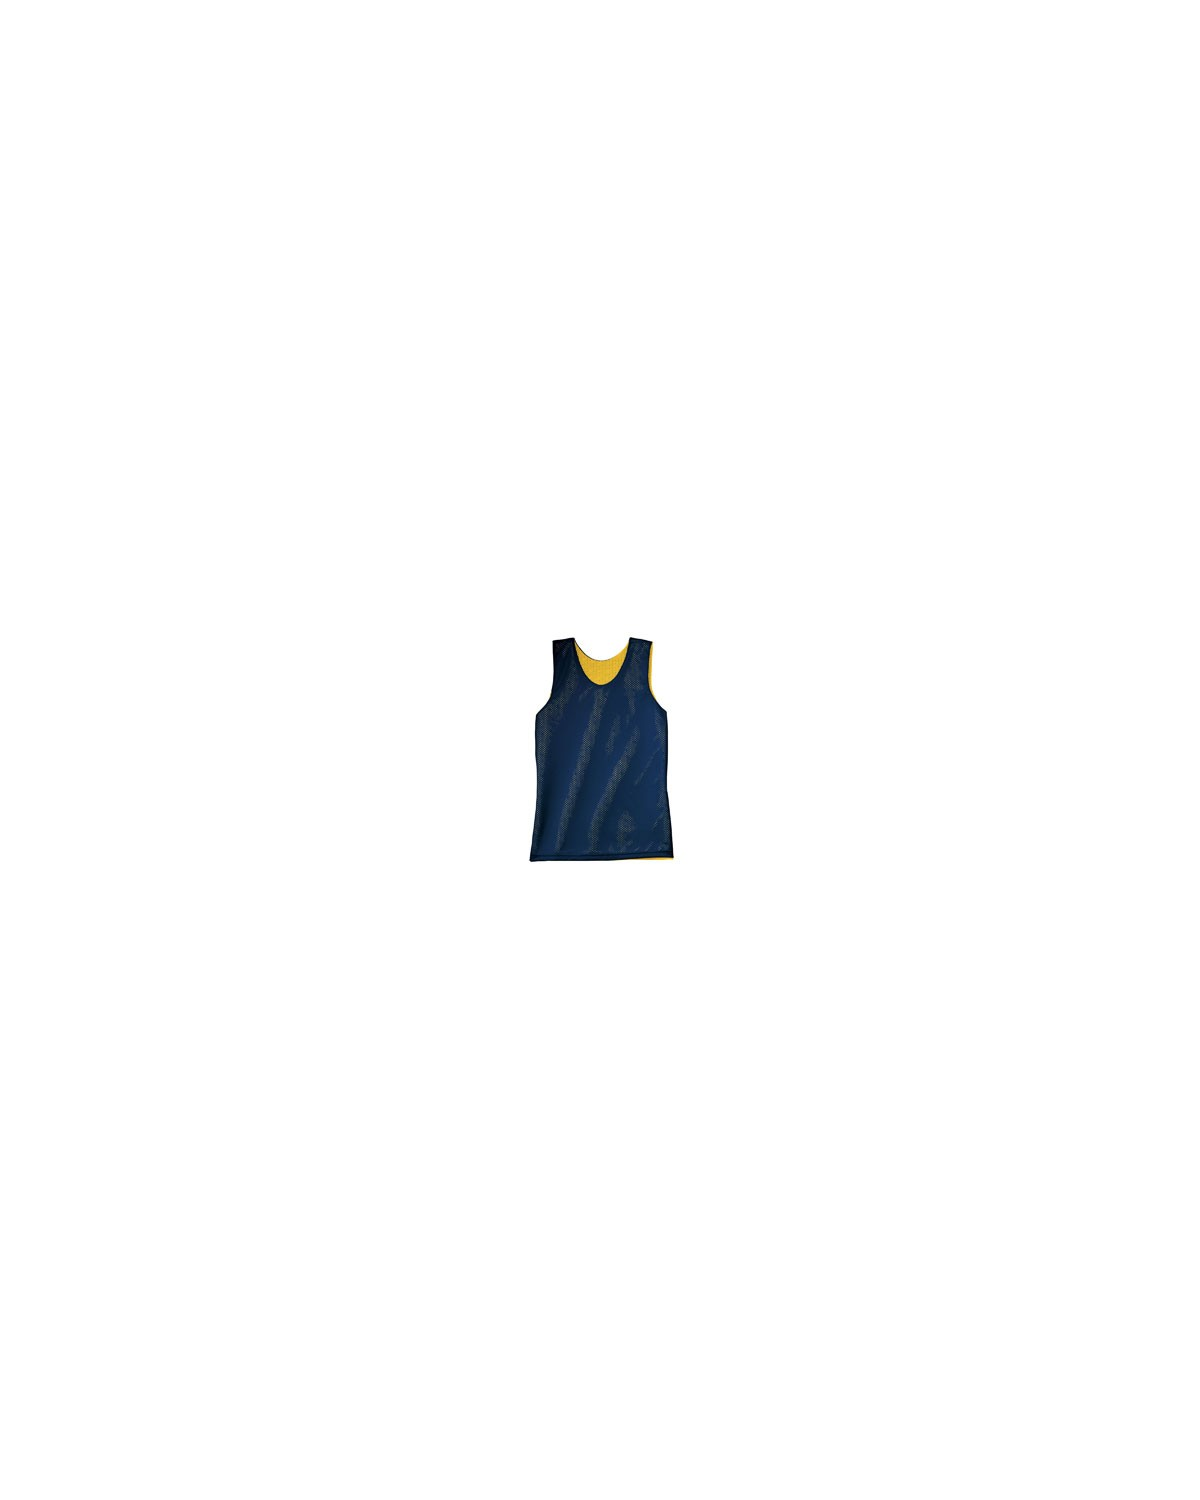 NF1270 A4 Apparel NAVY/GOLD